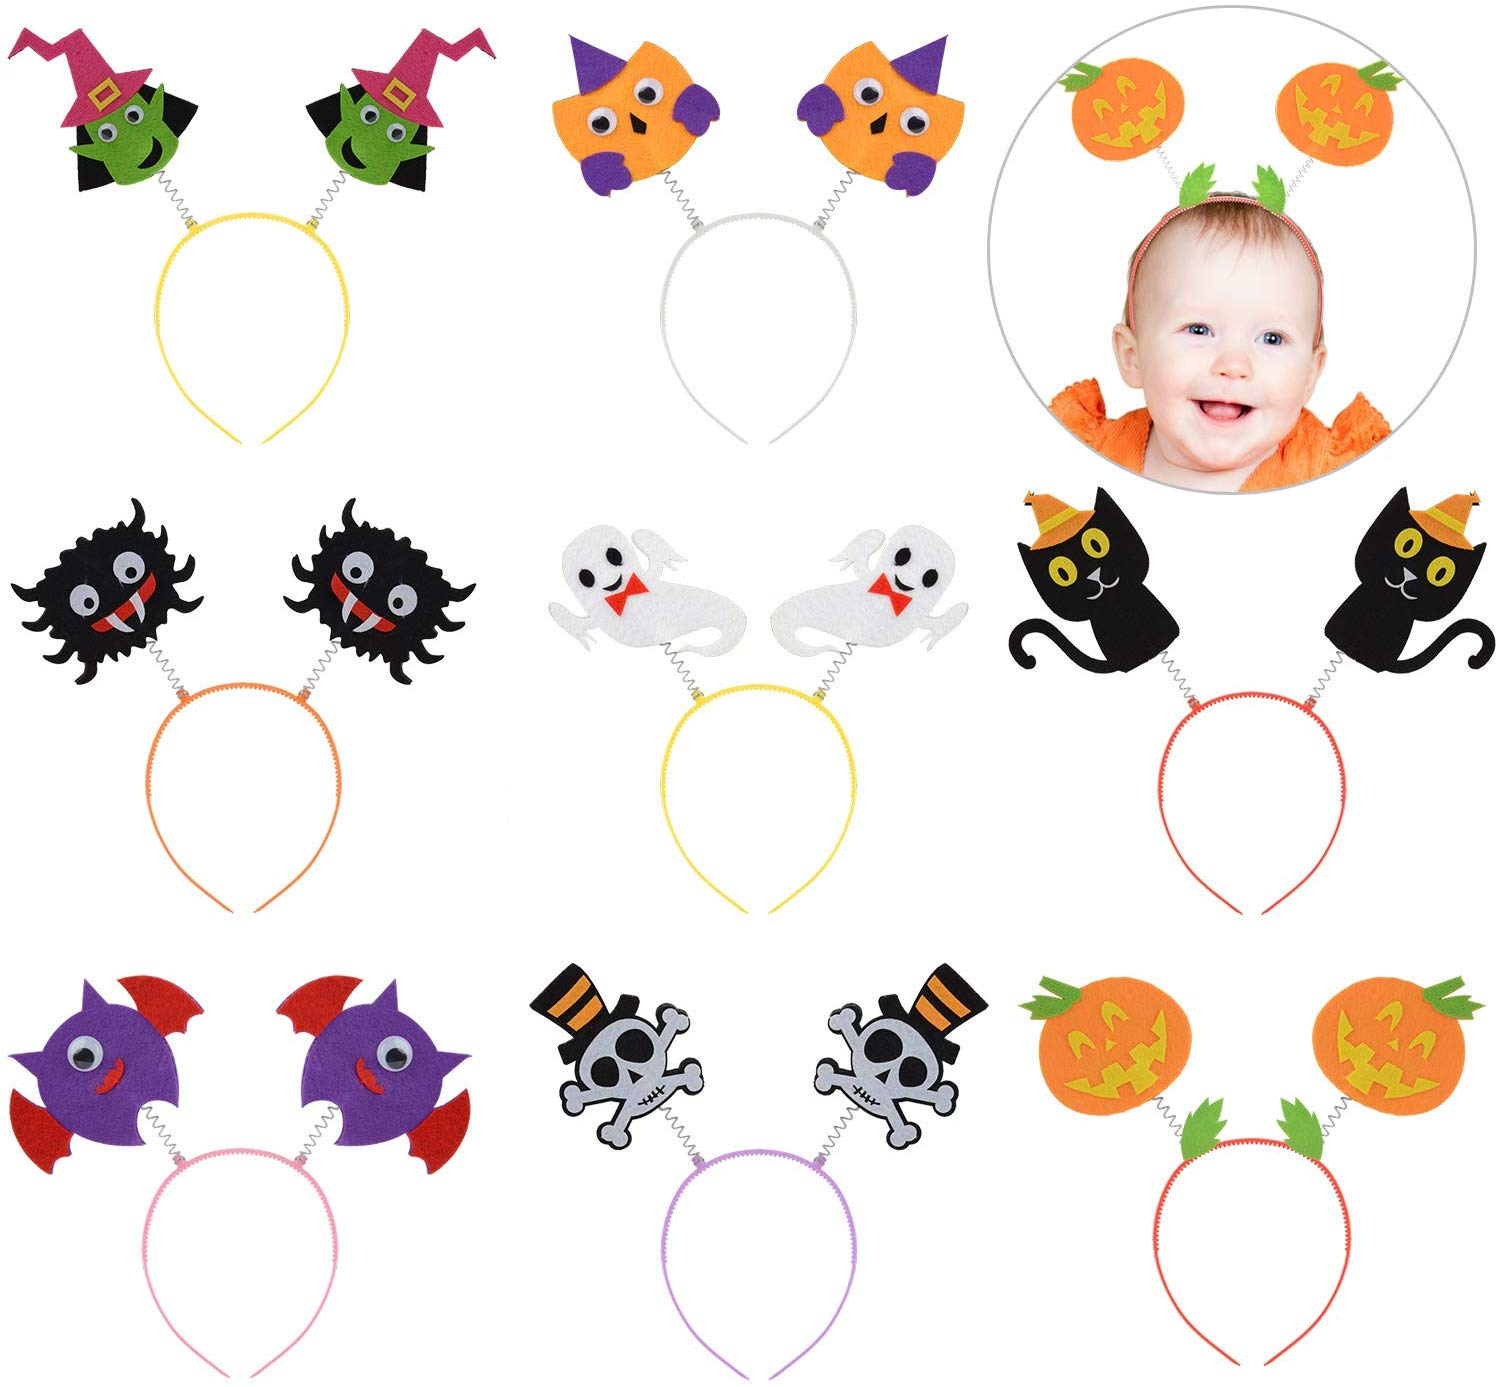 8PCS Halloween Party Headband DIY Creative Novelty Hair Hoop Costume Headband